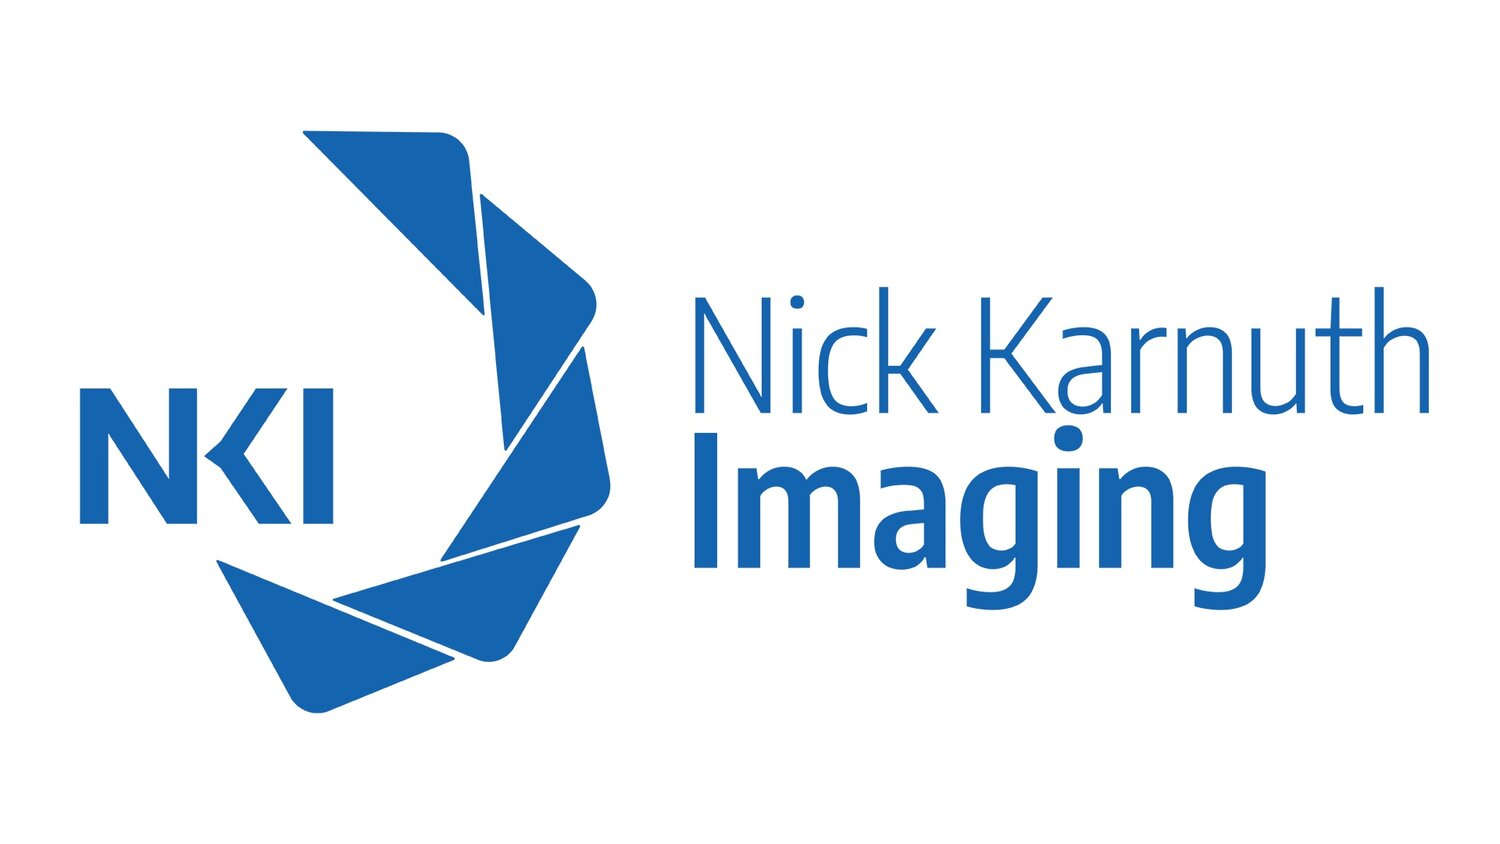 nick karnuth imaging llc